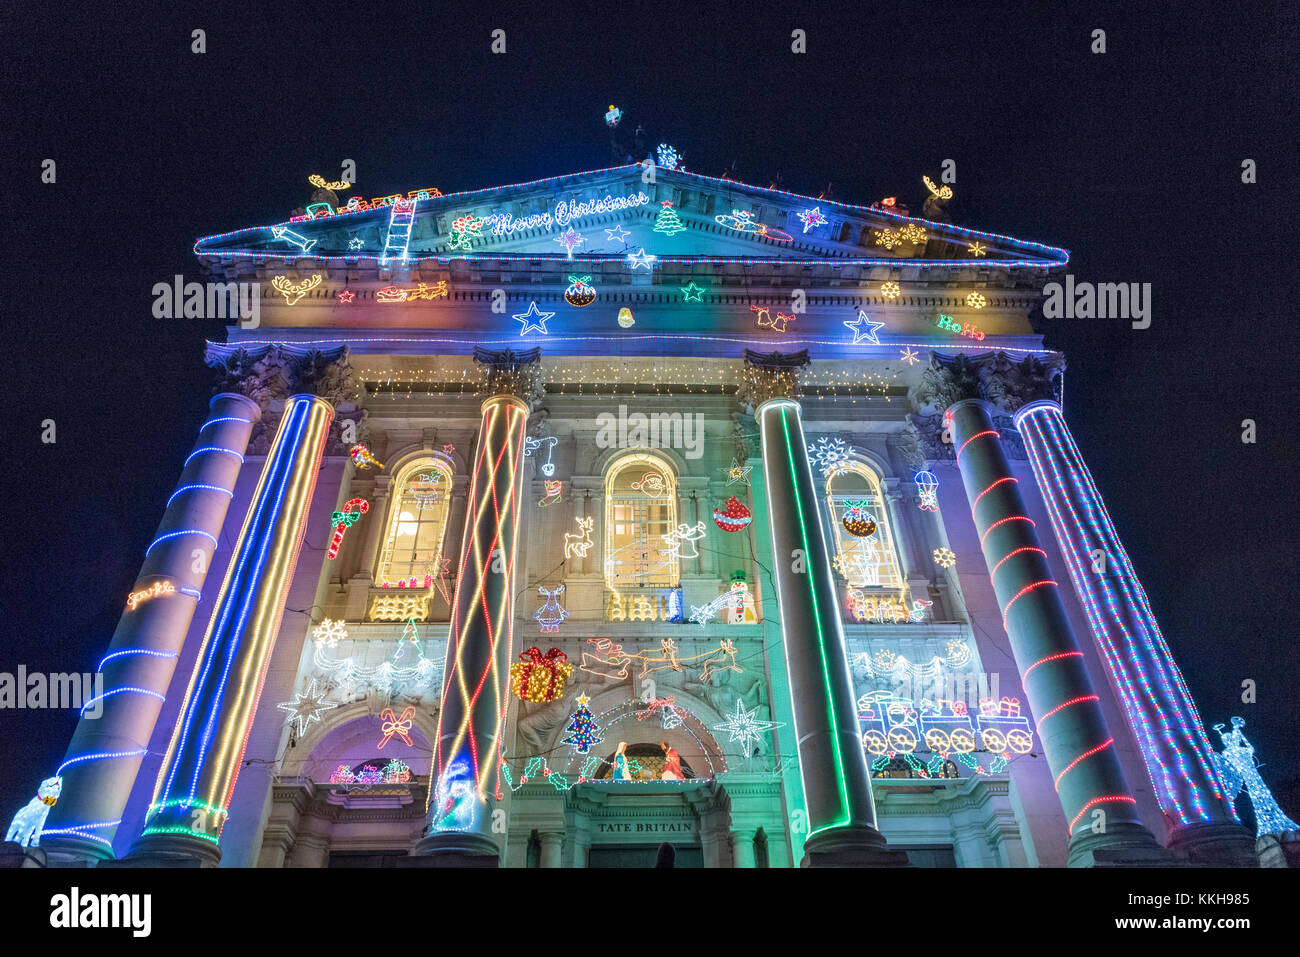 London, UK.  1 December 2017.  Alan Kane's new festive work, 'Home for Christmas', is unveiled at Tate - Stock Image